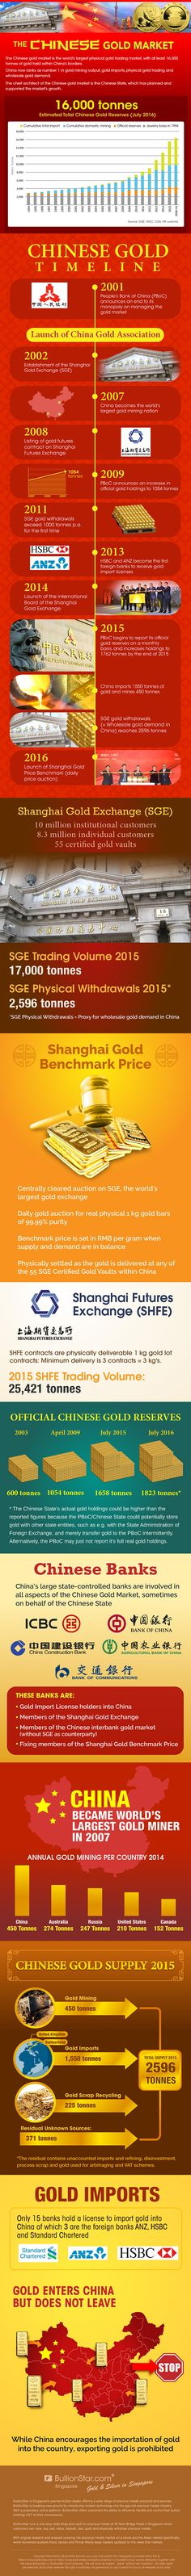 Infographic: The Chinese Gold Market (2016) A guide to the largest physical gold trading market in the world, China.